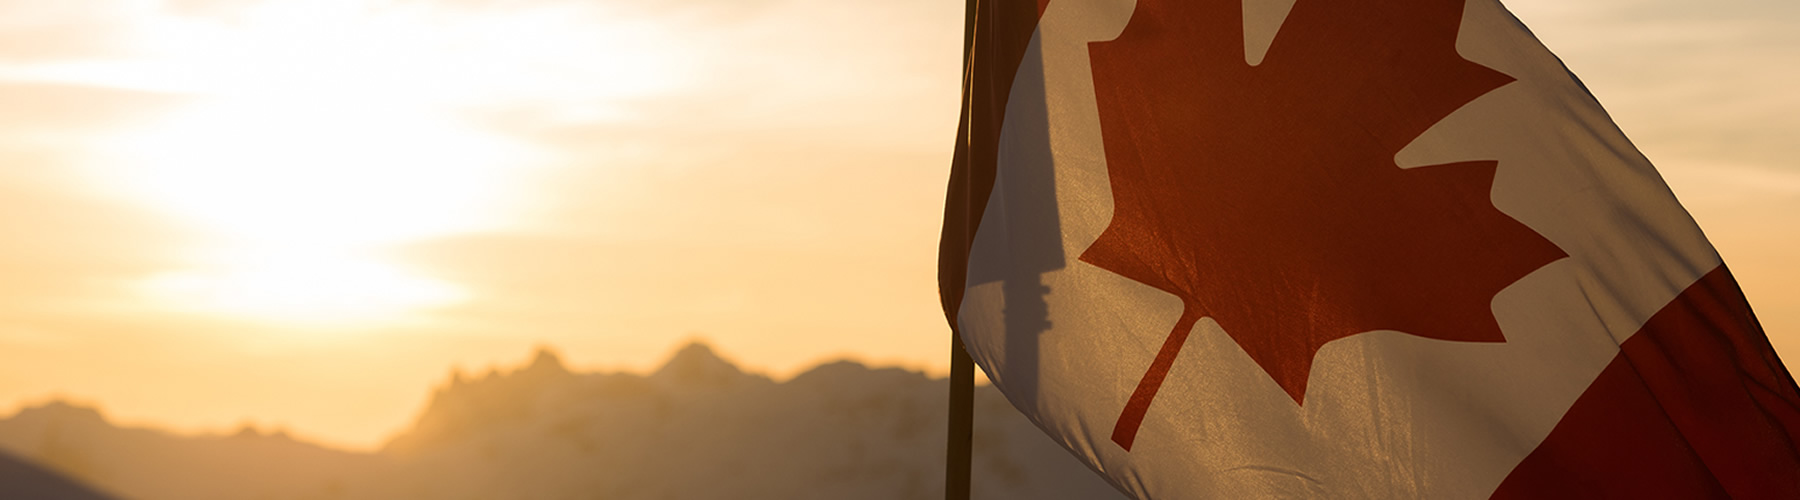 Canadian flag in the mountains at sunset